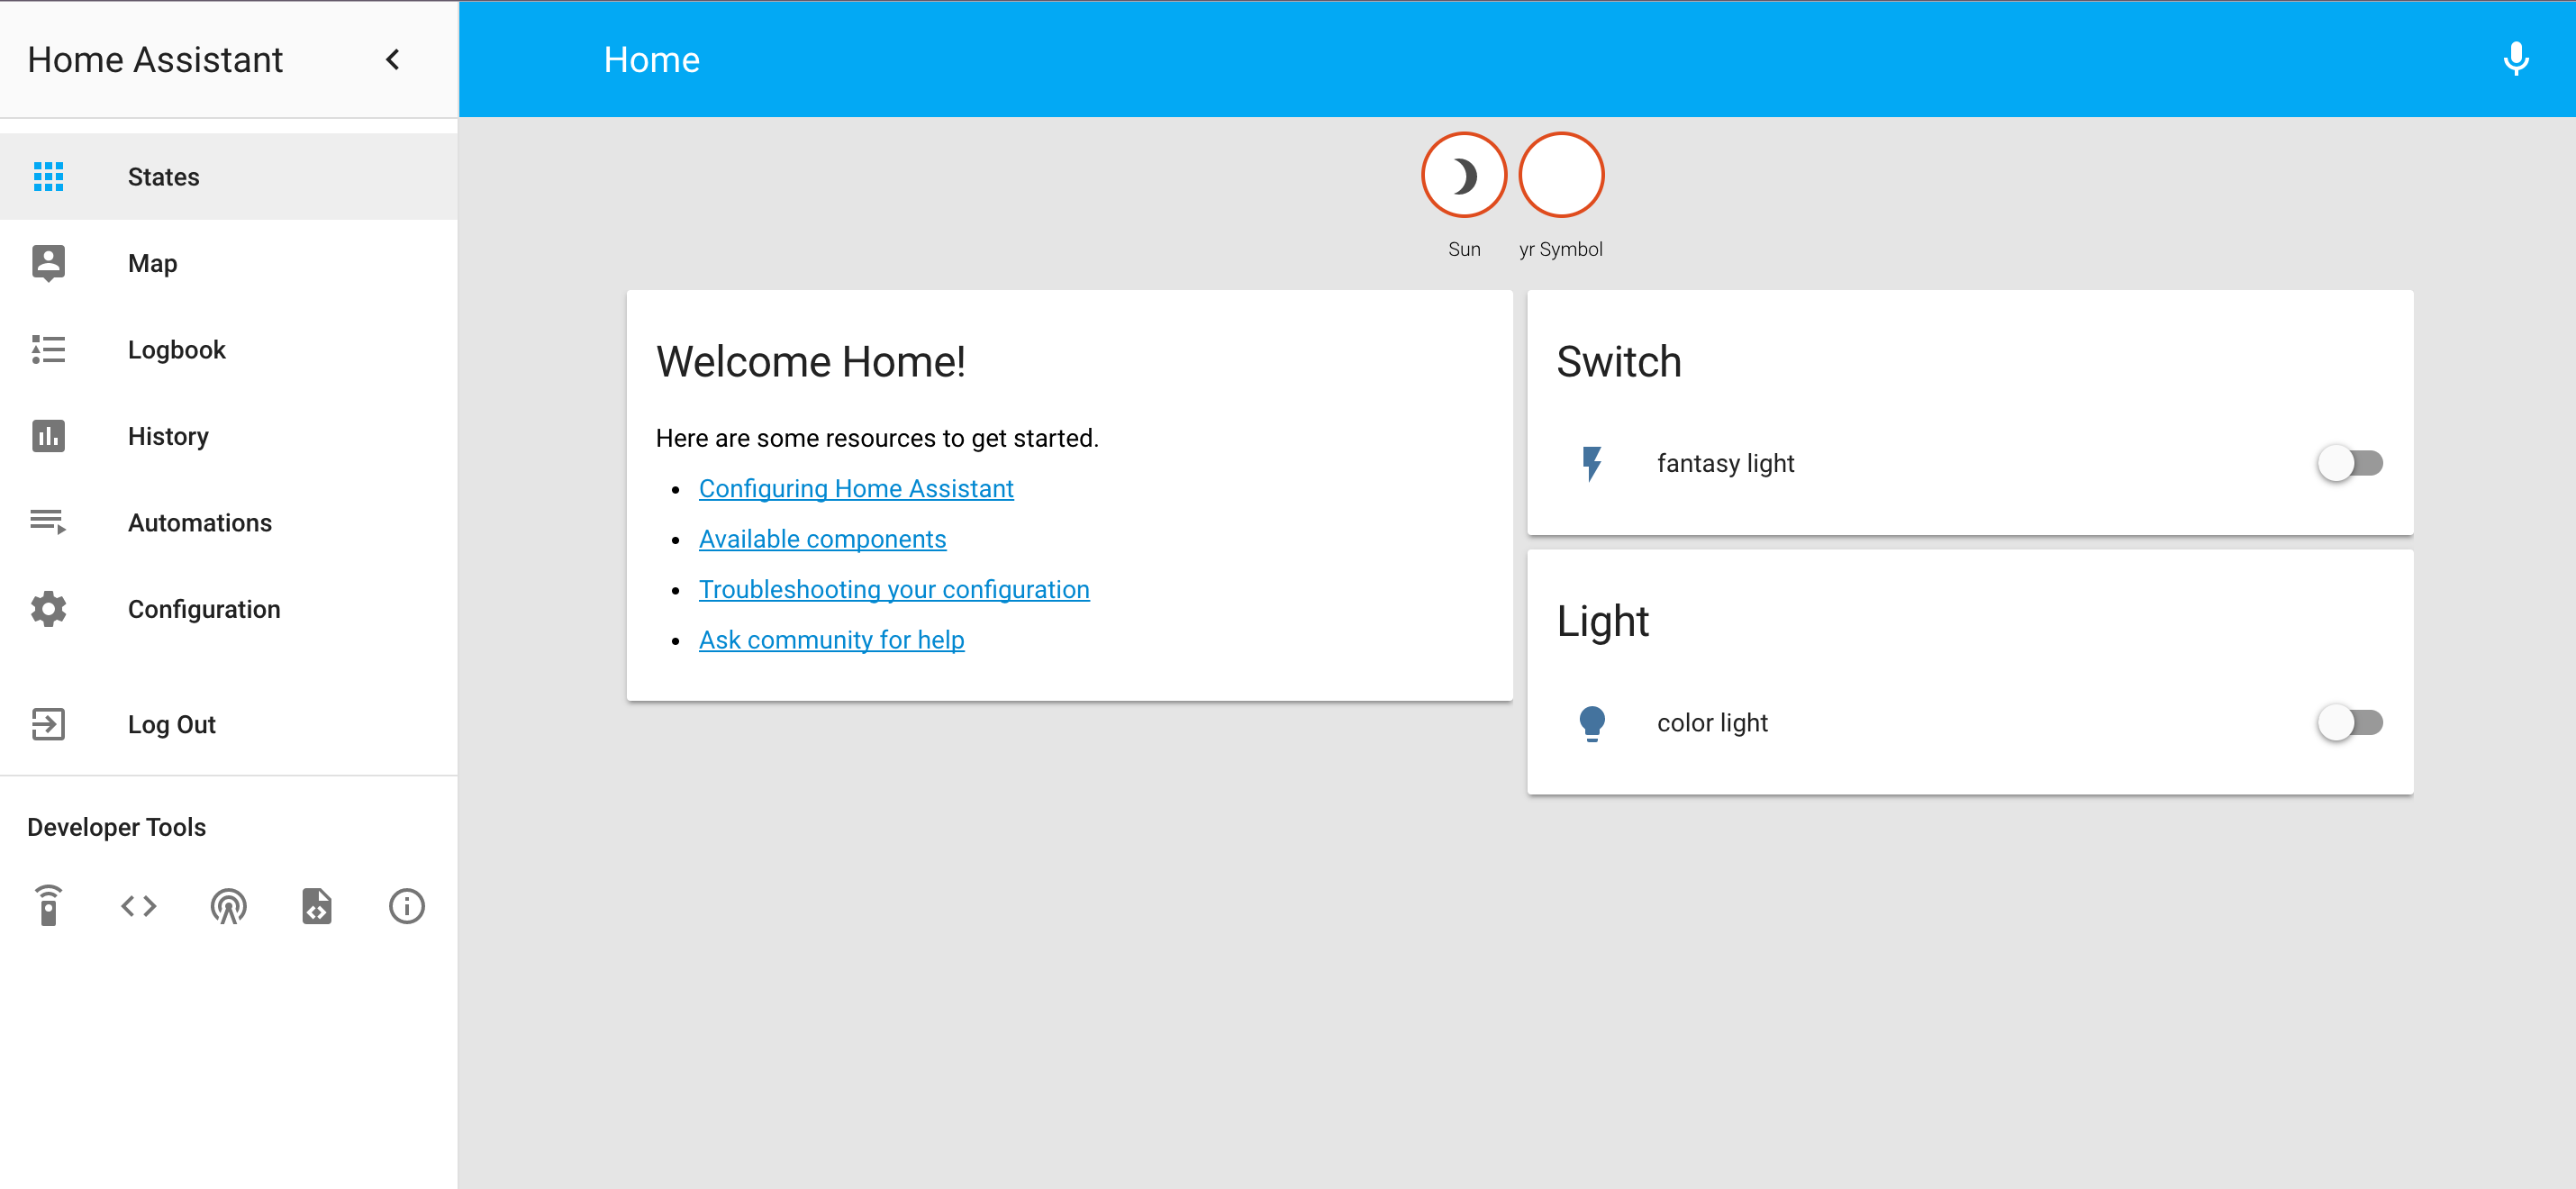 Home Assistant 桌面